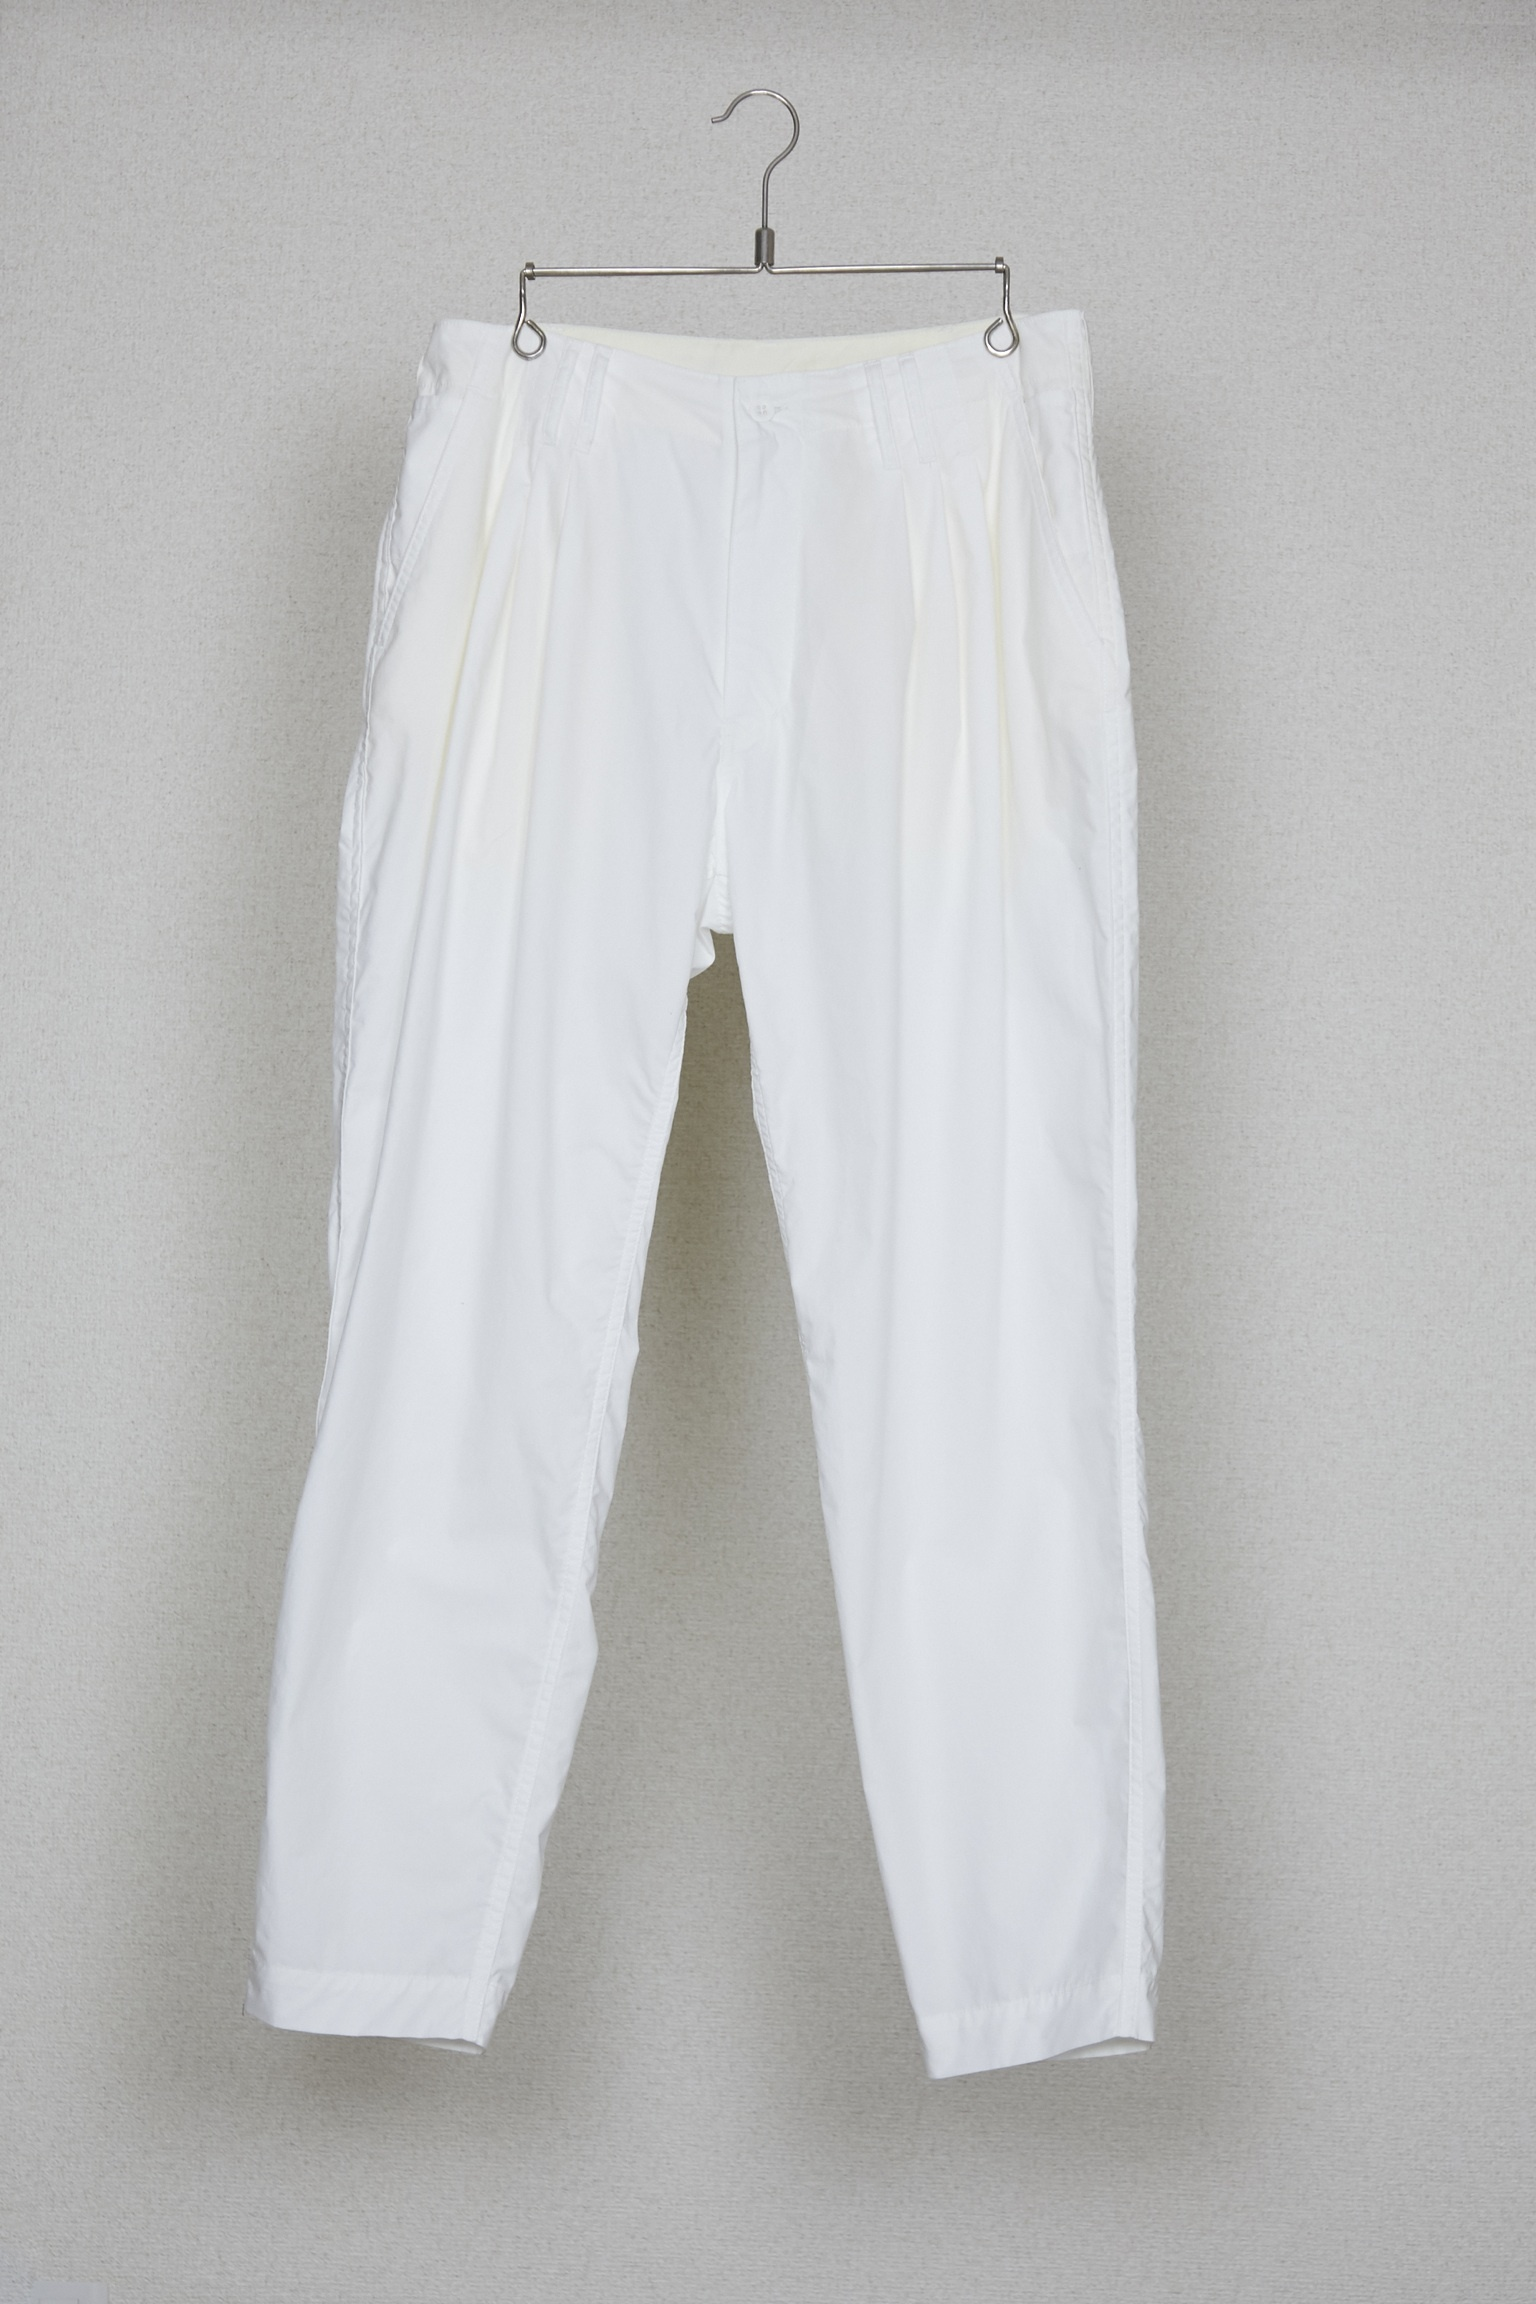 50%OFF【HUMIS】CHEMICAL 3-TUCK PANTS